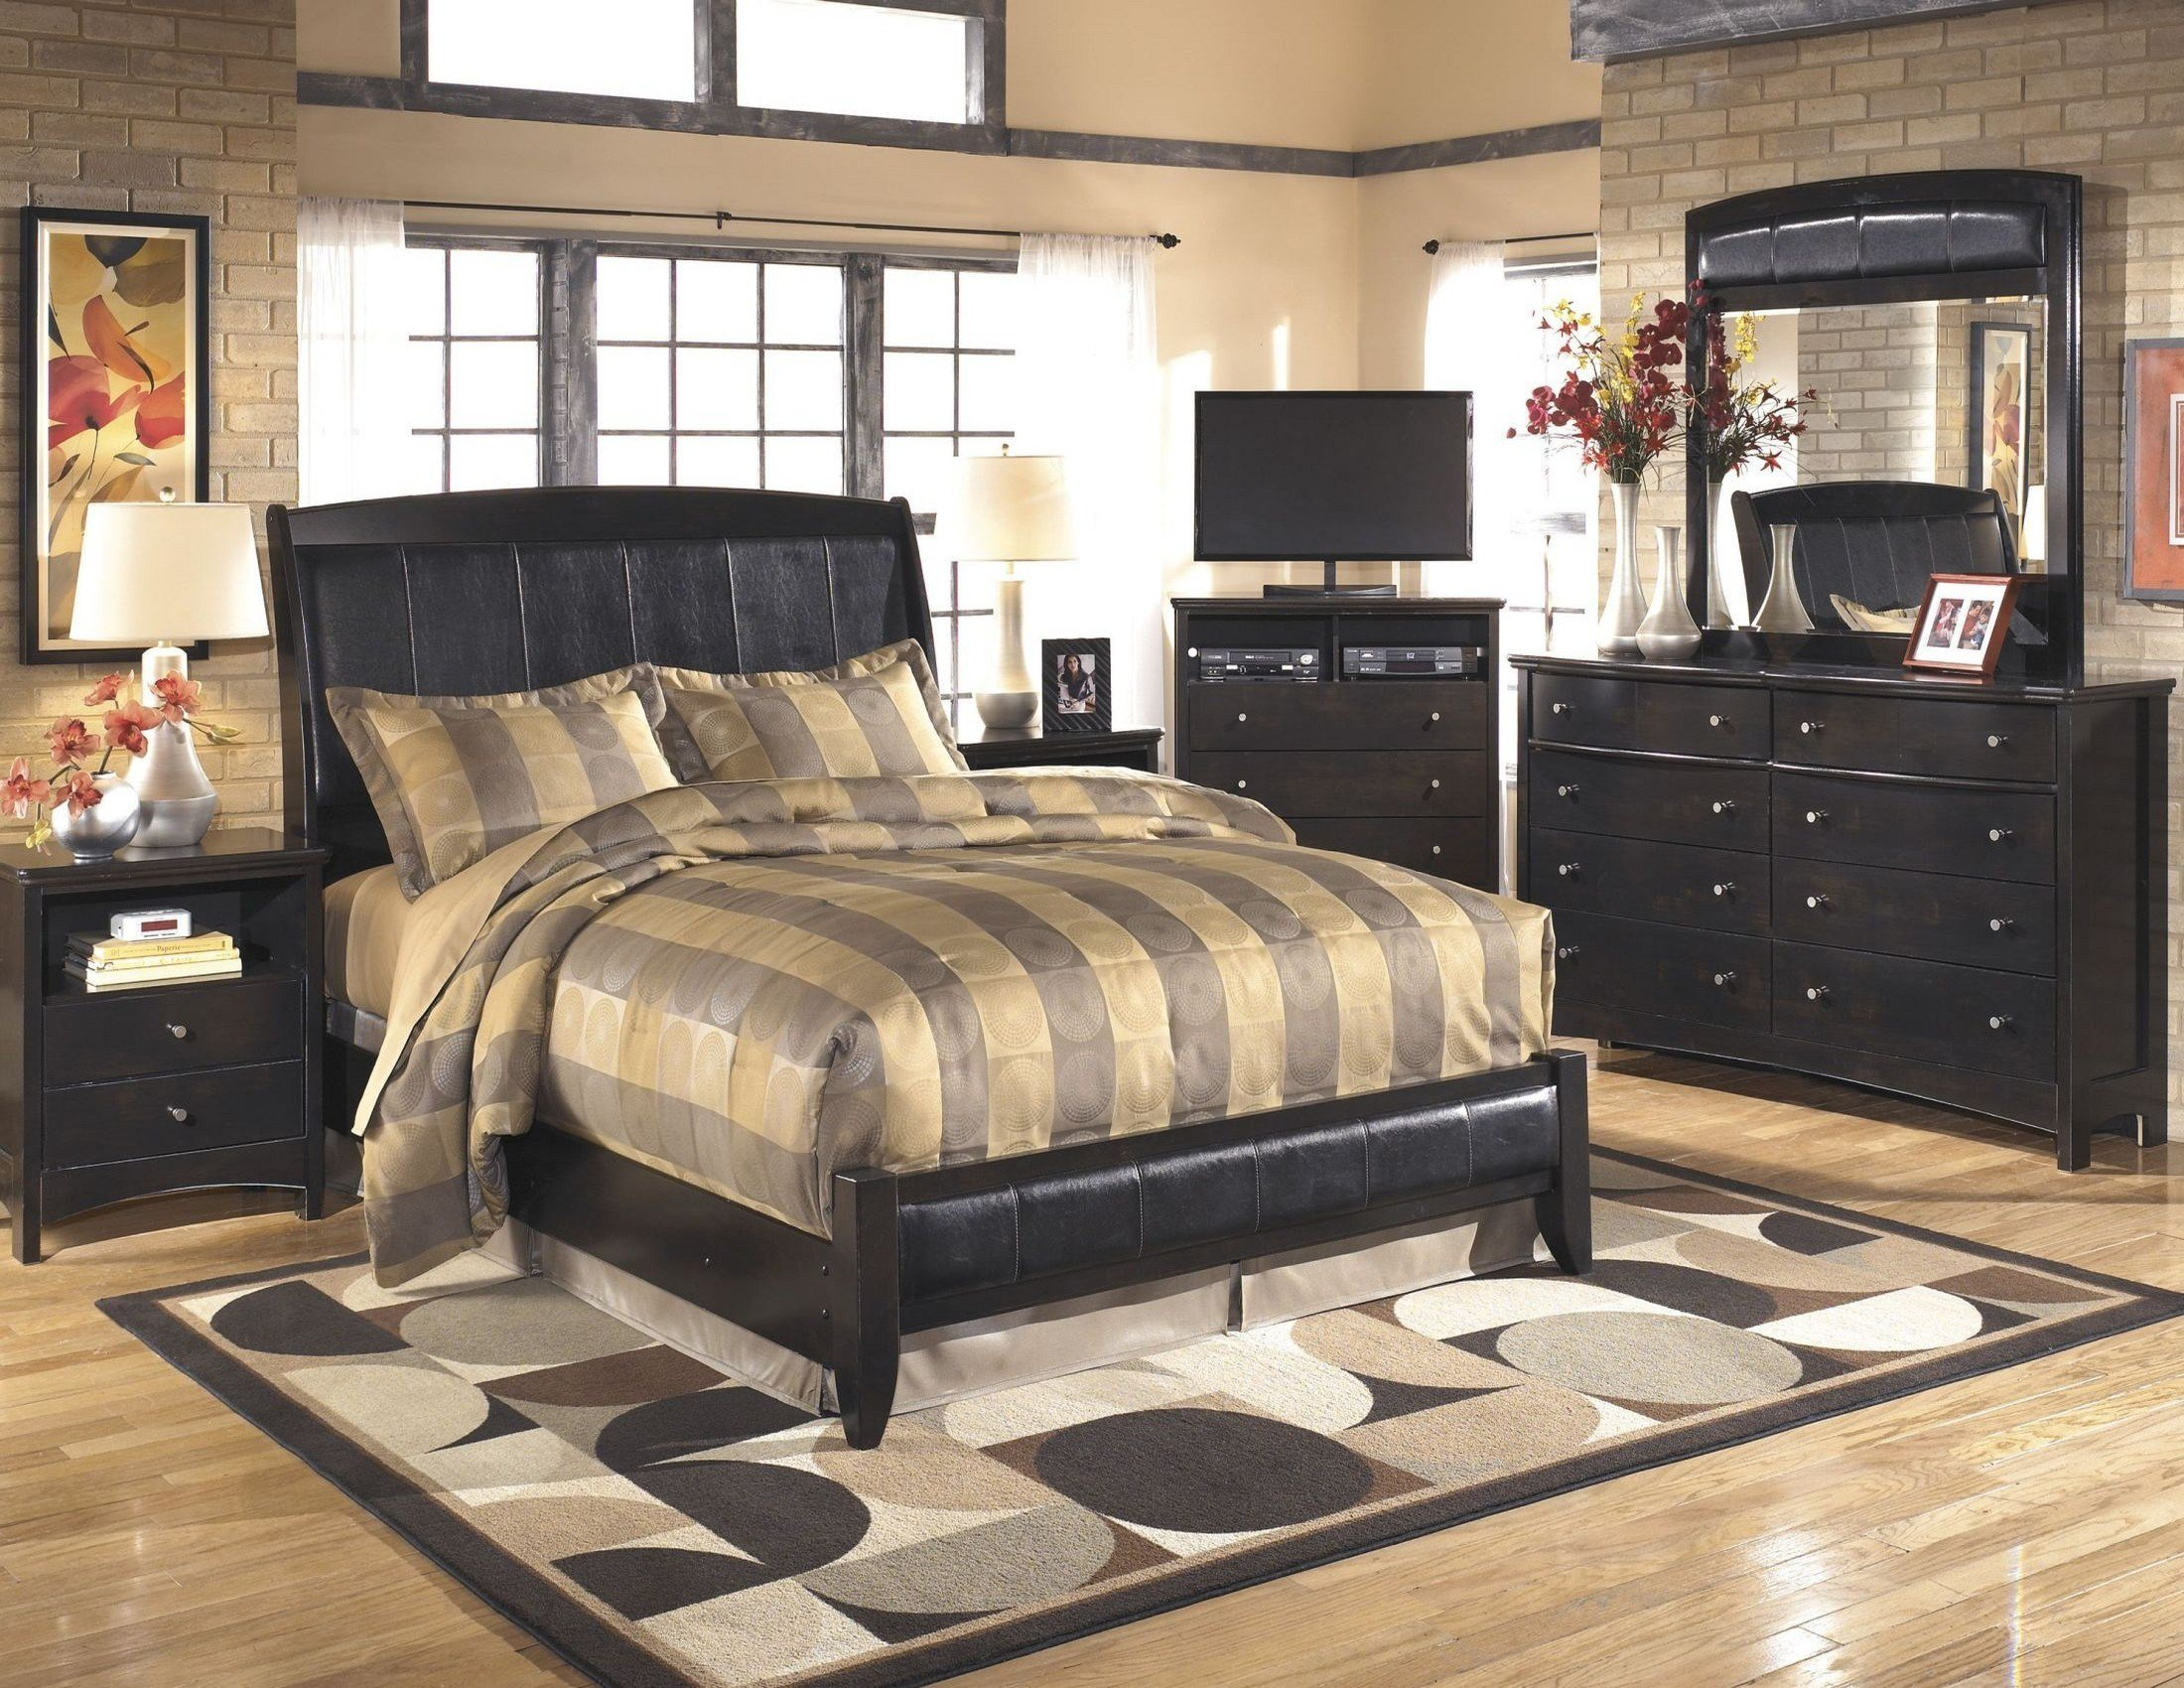 Best Harmony Bedroom Set From Ashley B208 77 74 Coleman Furniture With Pictures